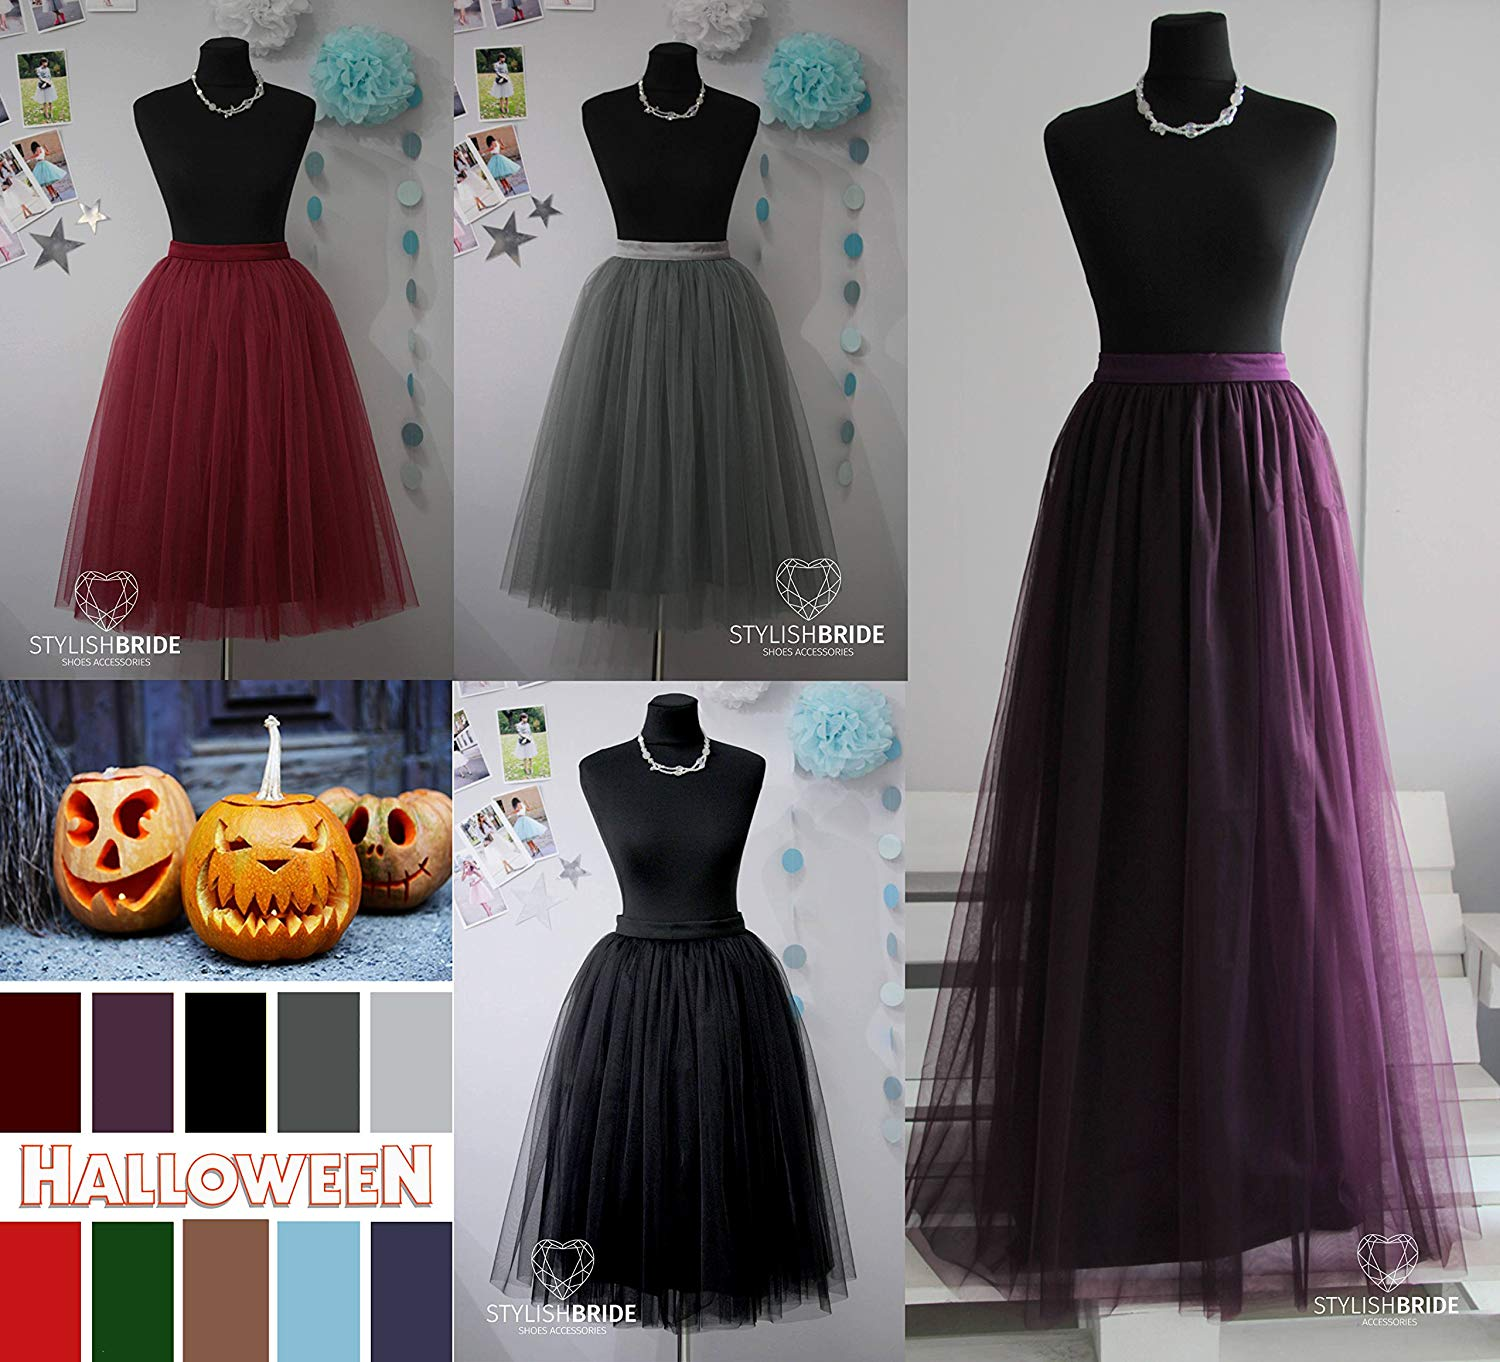 df4f2d791f Get Quotations · Halloween Colors Tulle Skirt Casual Women's, Wine Gold  Grey Black Emerald Green Tulle Skirt,